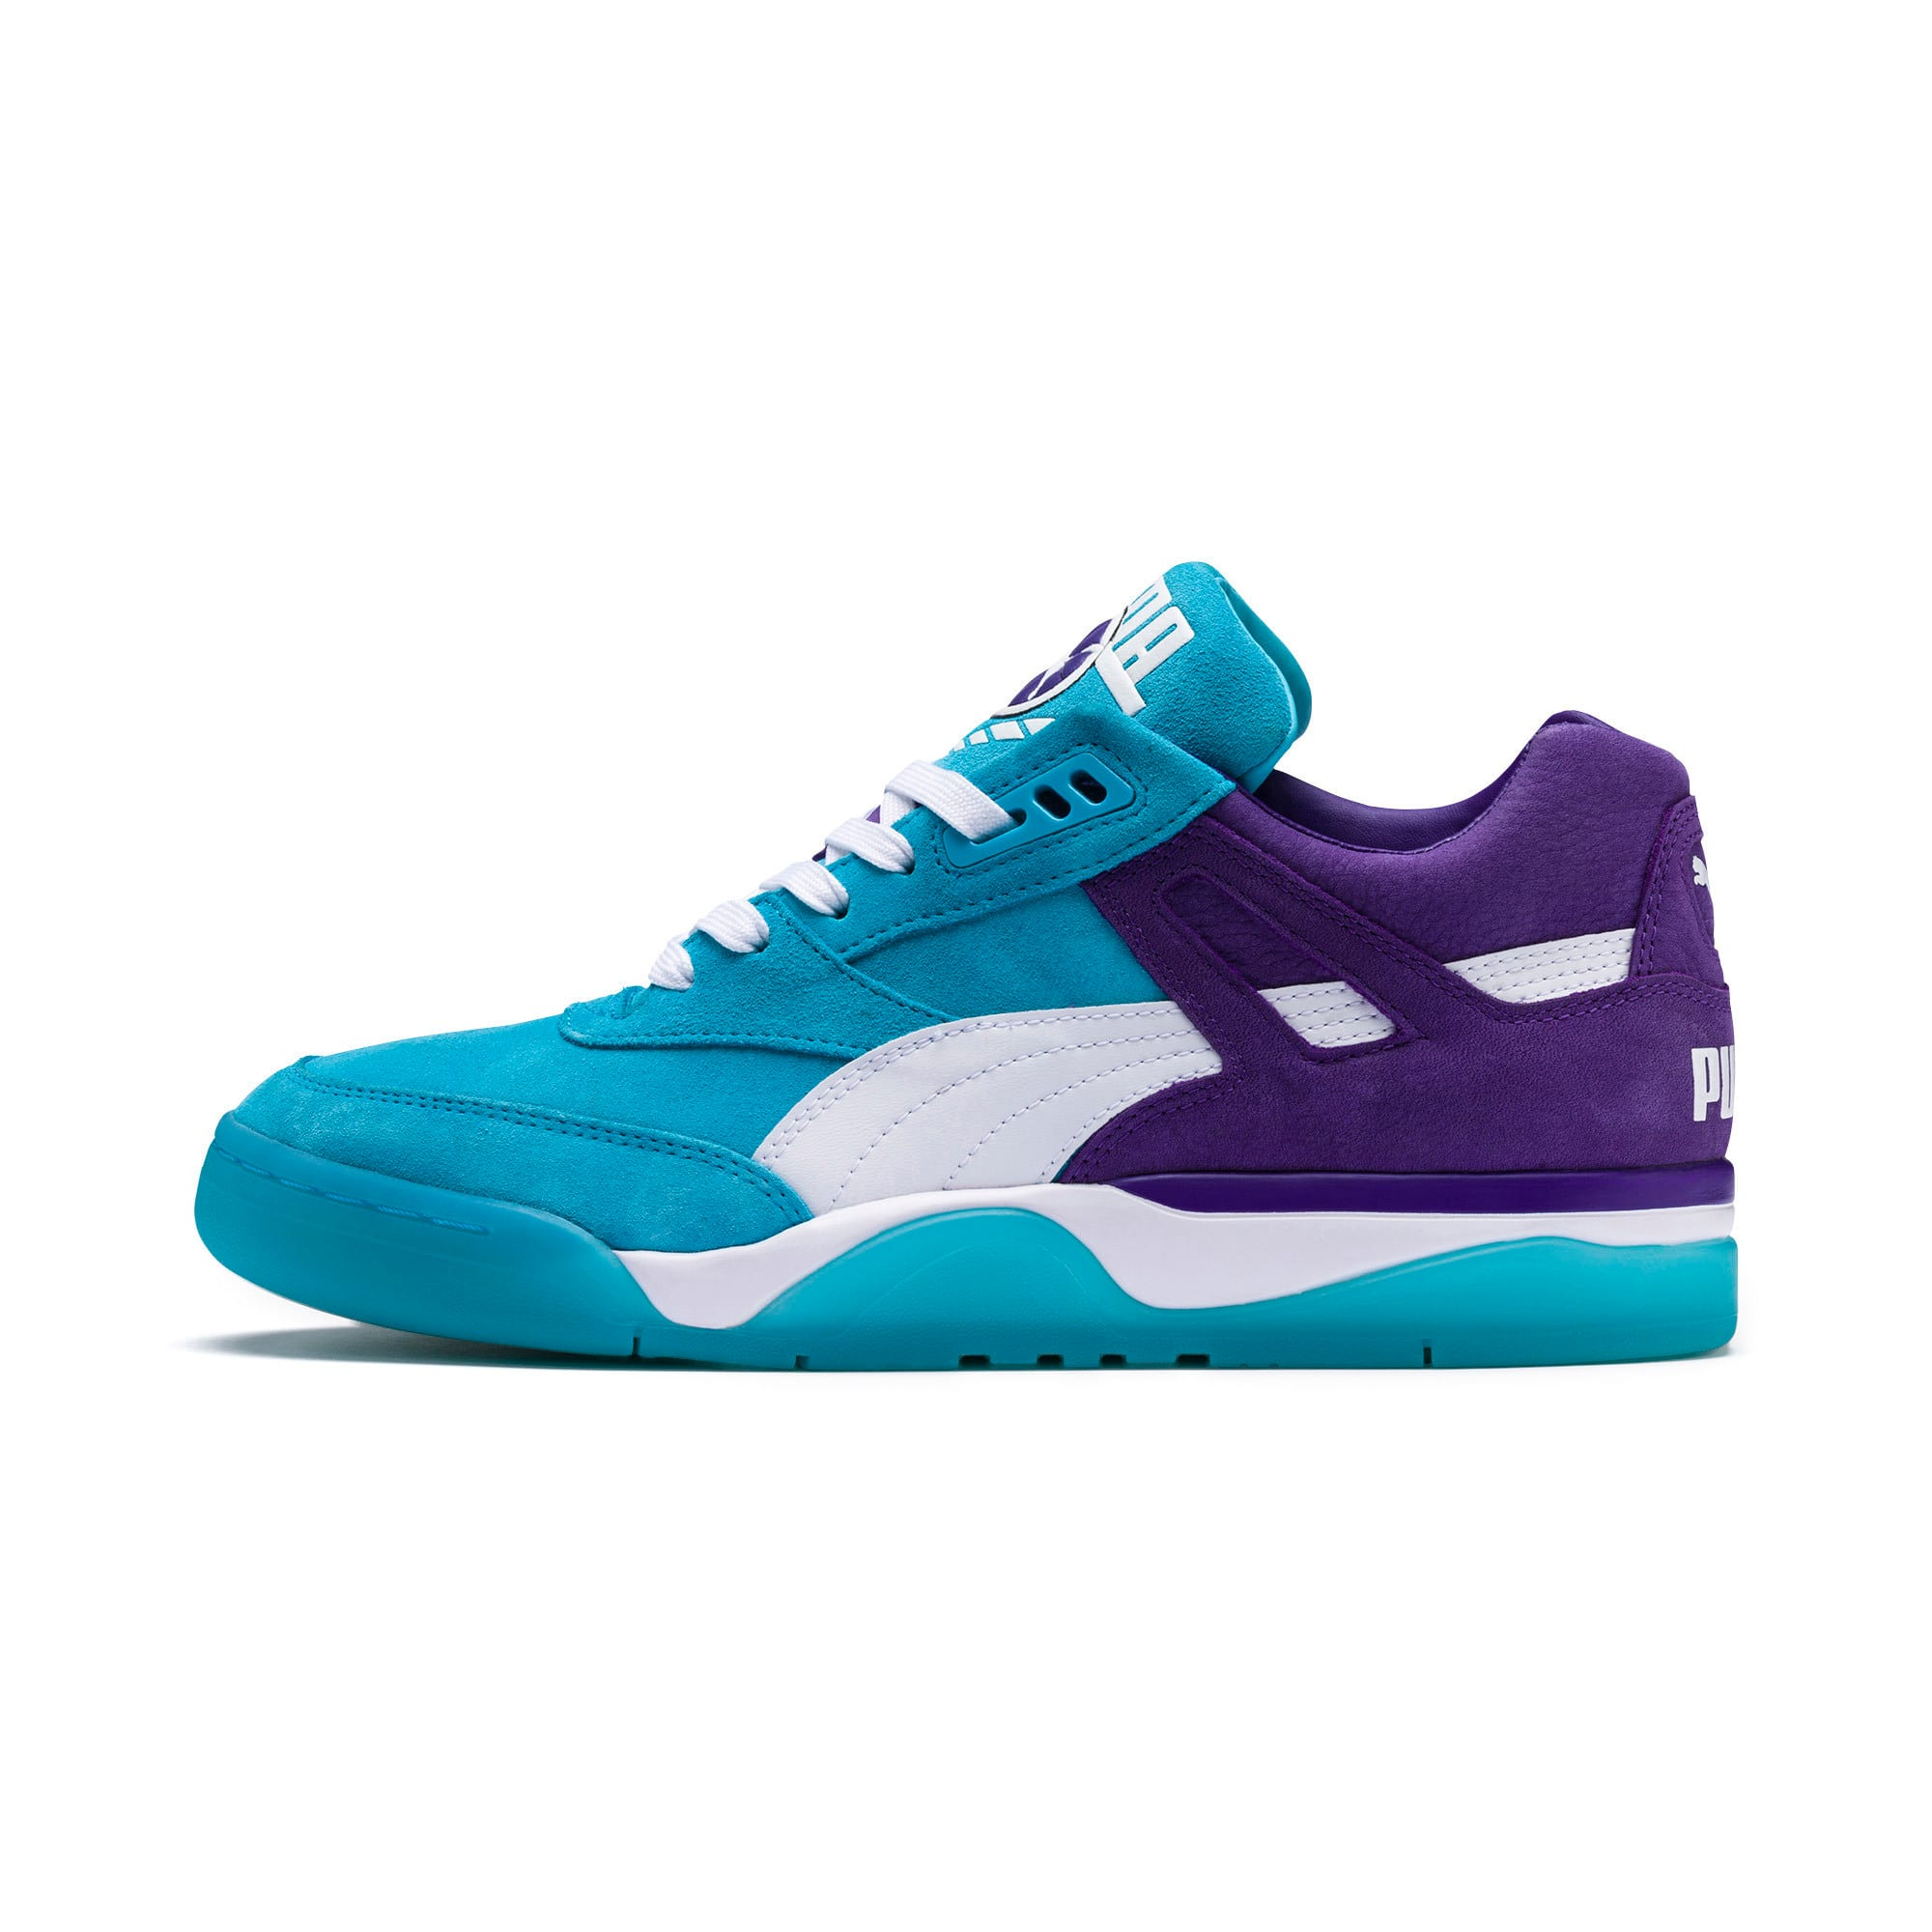 Thumbnail 1 of Palace Guard Queen City Sneakers, Blue Atoll-Prism Violet, medium